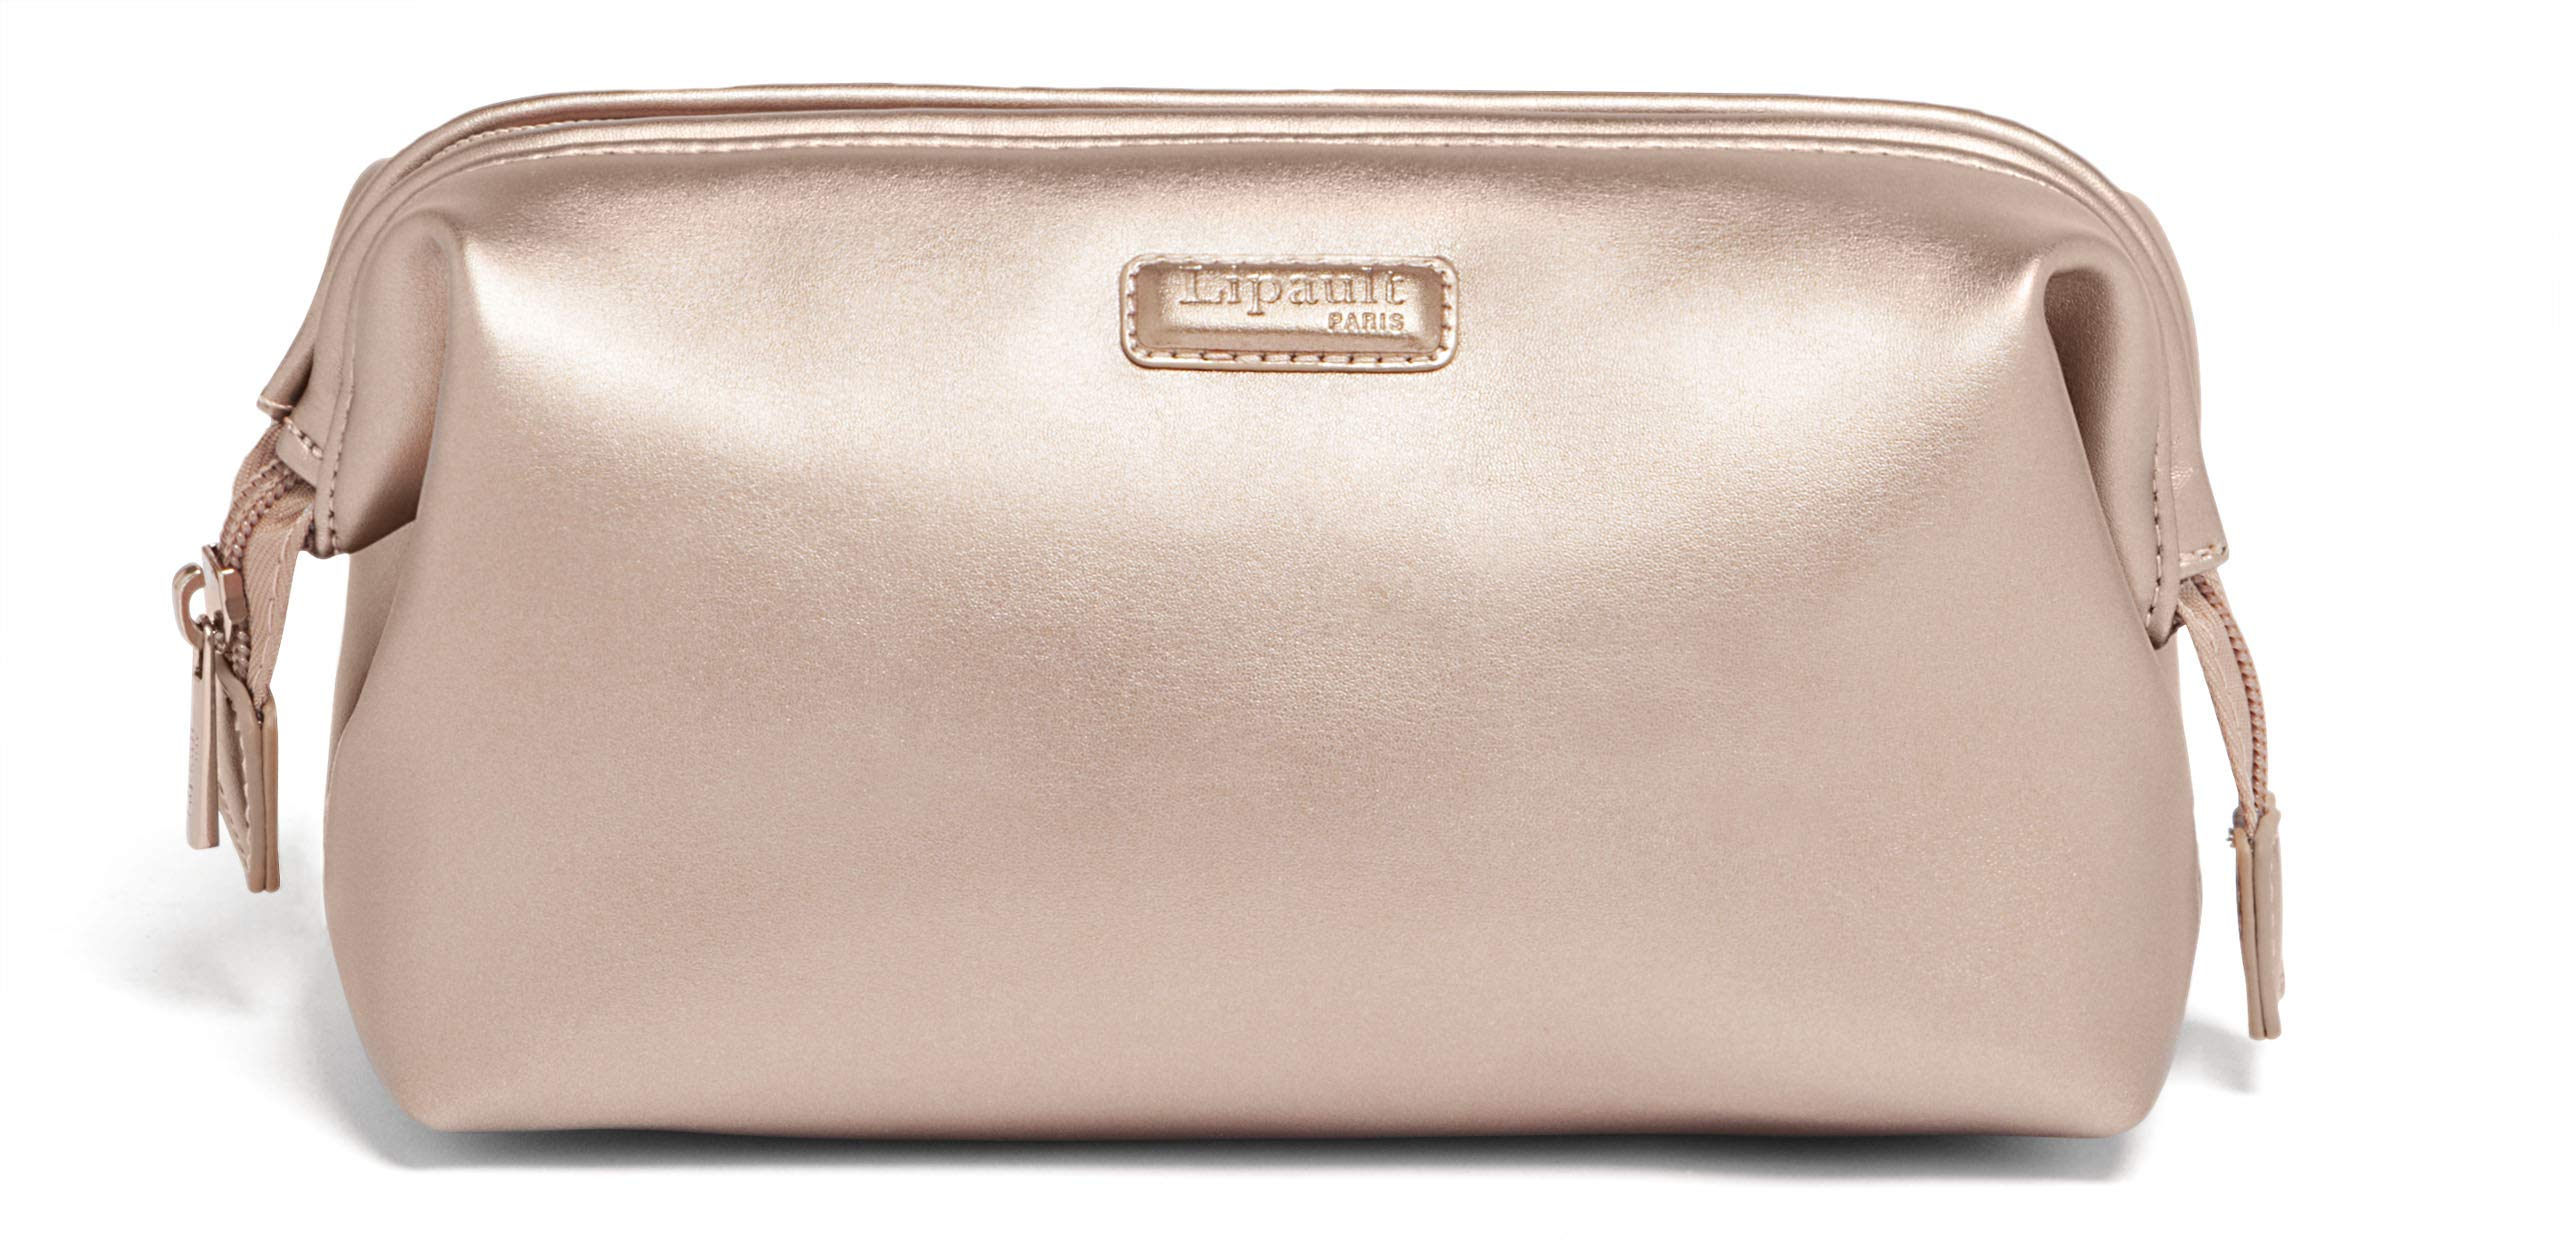 Lipault - Miss Plume Toiletry Kit - Compact Travel Organizer Bag for Women - Pink Gold